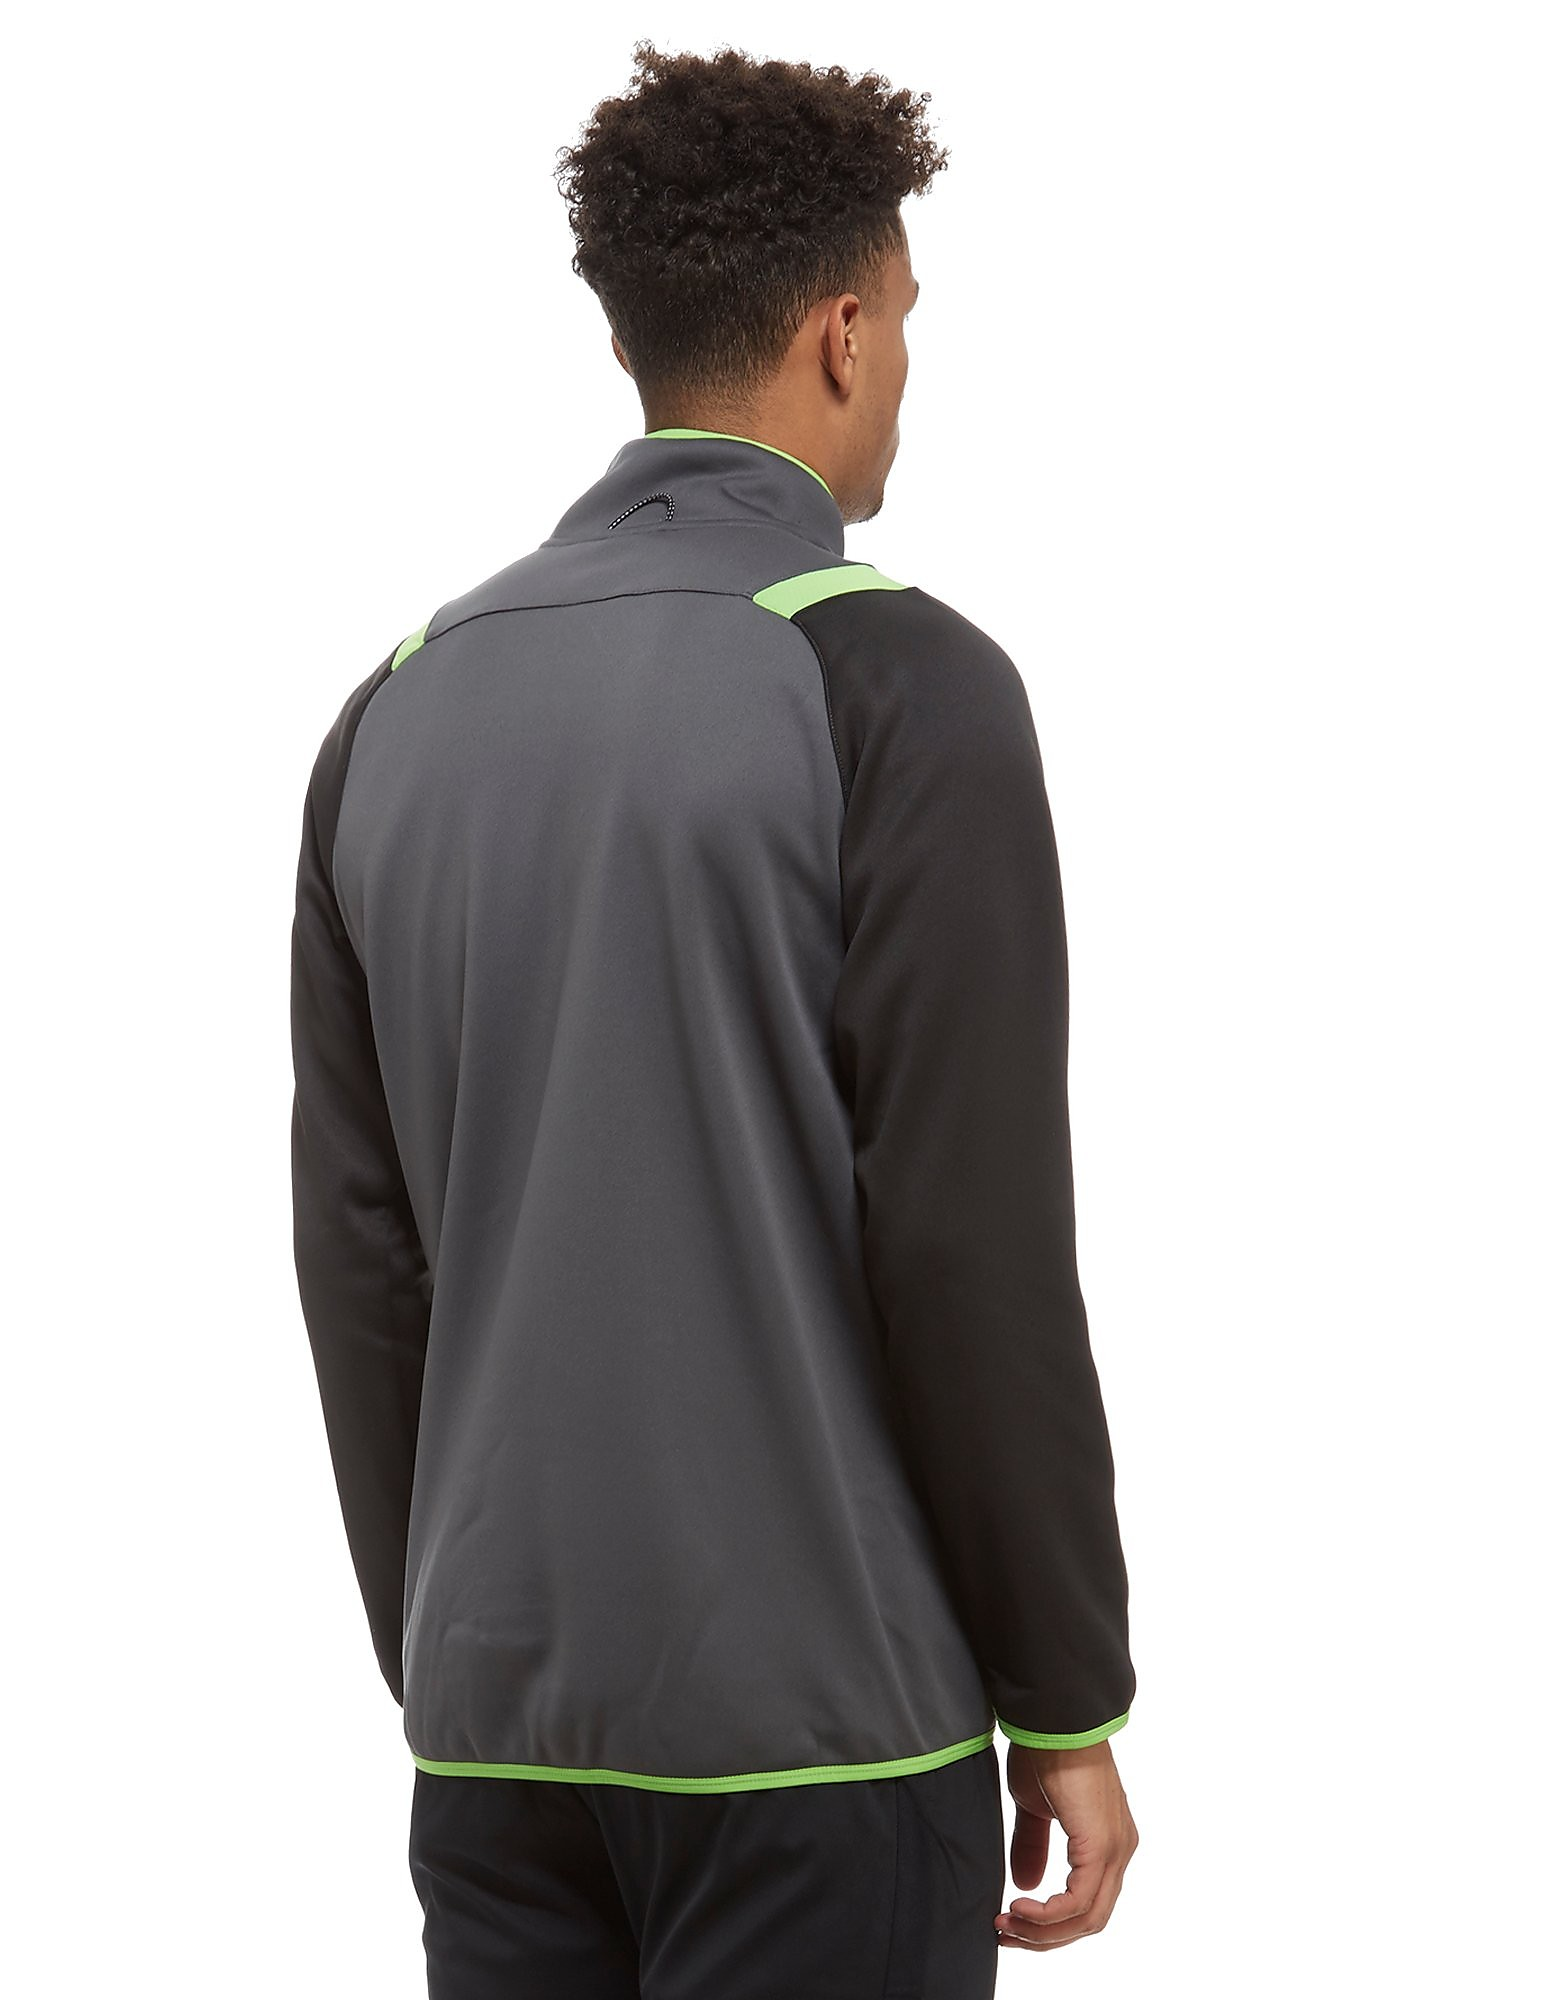 Canterbury Ireland RFU ThermoReg 1/2 Zip Top